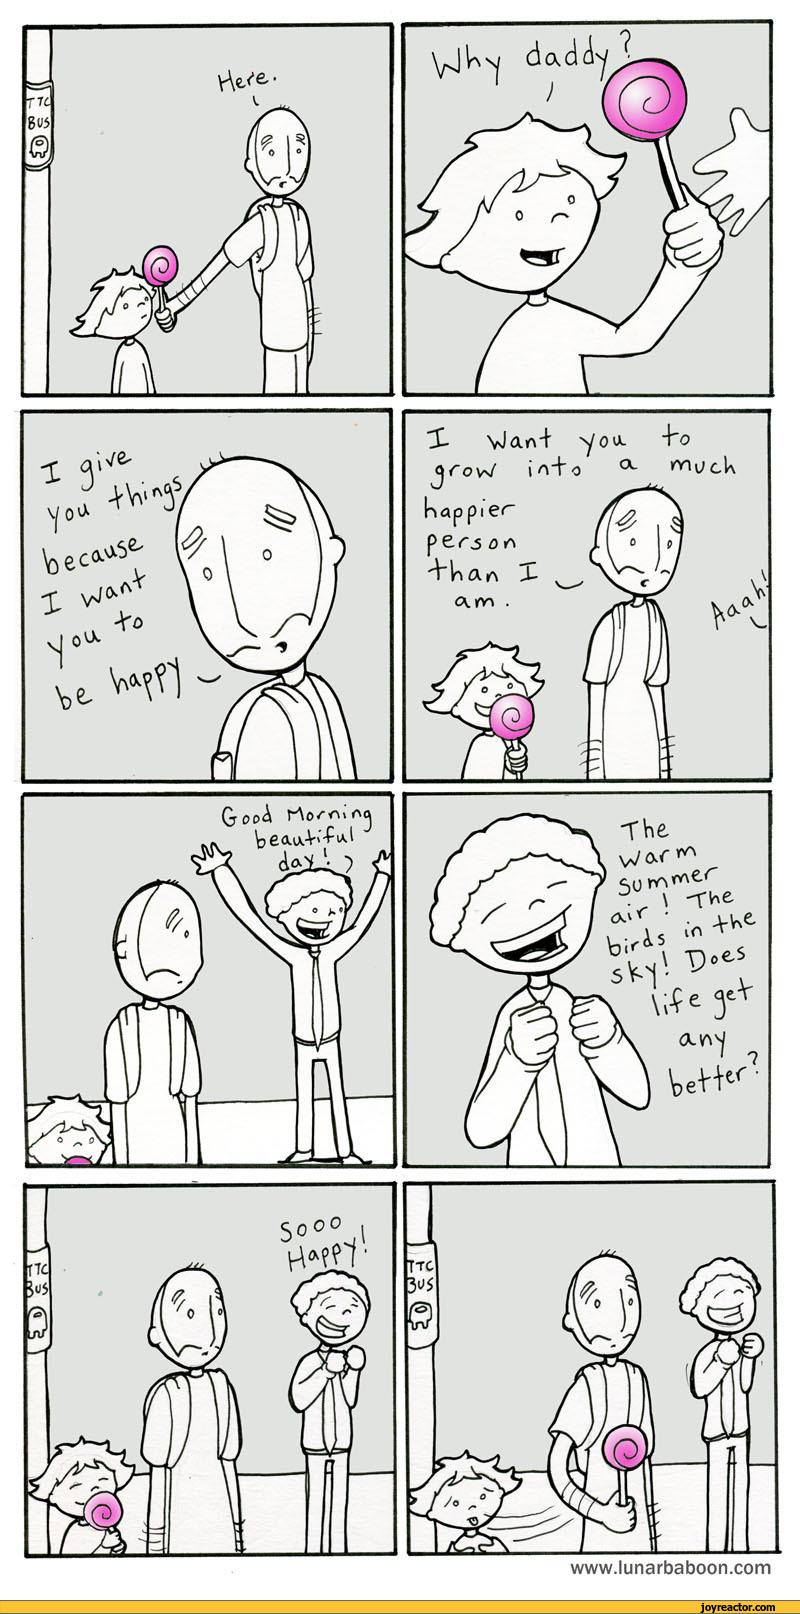 comics-lunarbaboon-happy-candy-788933.jpeg